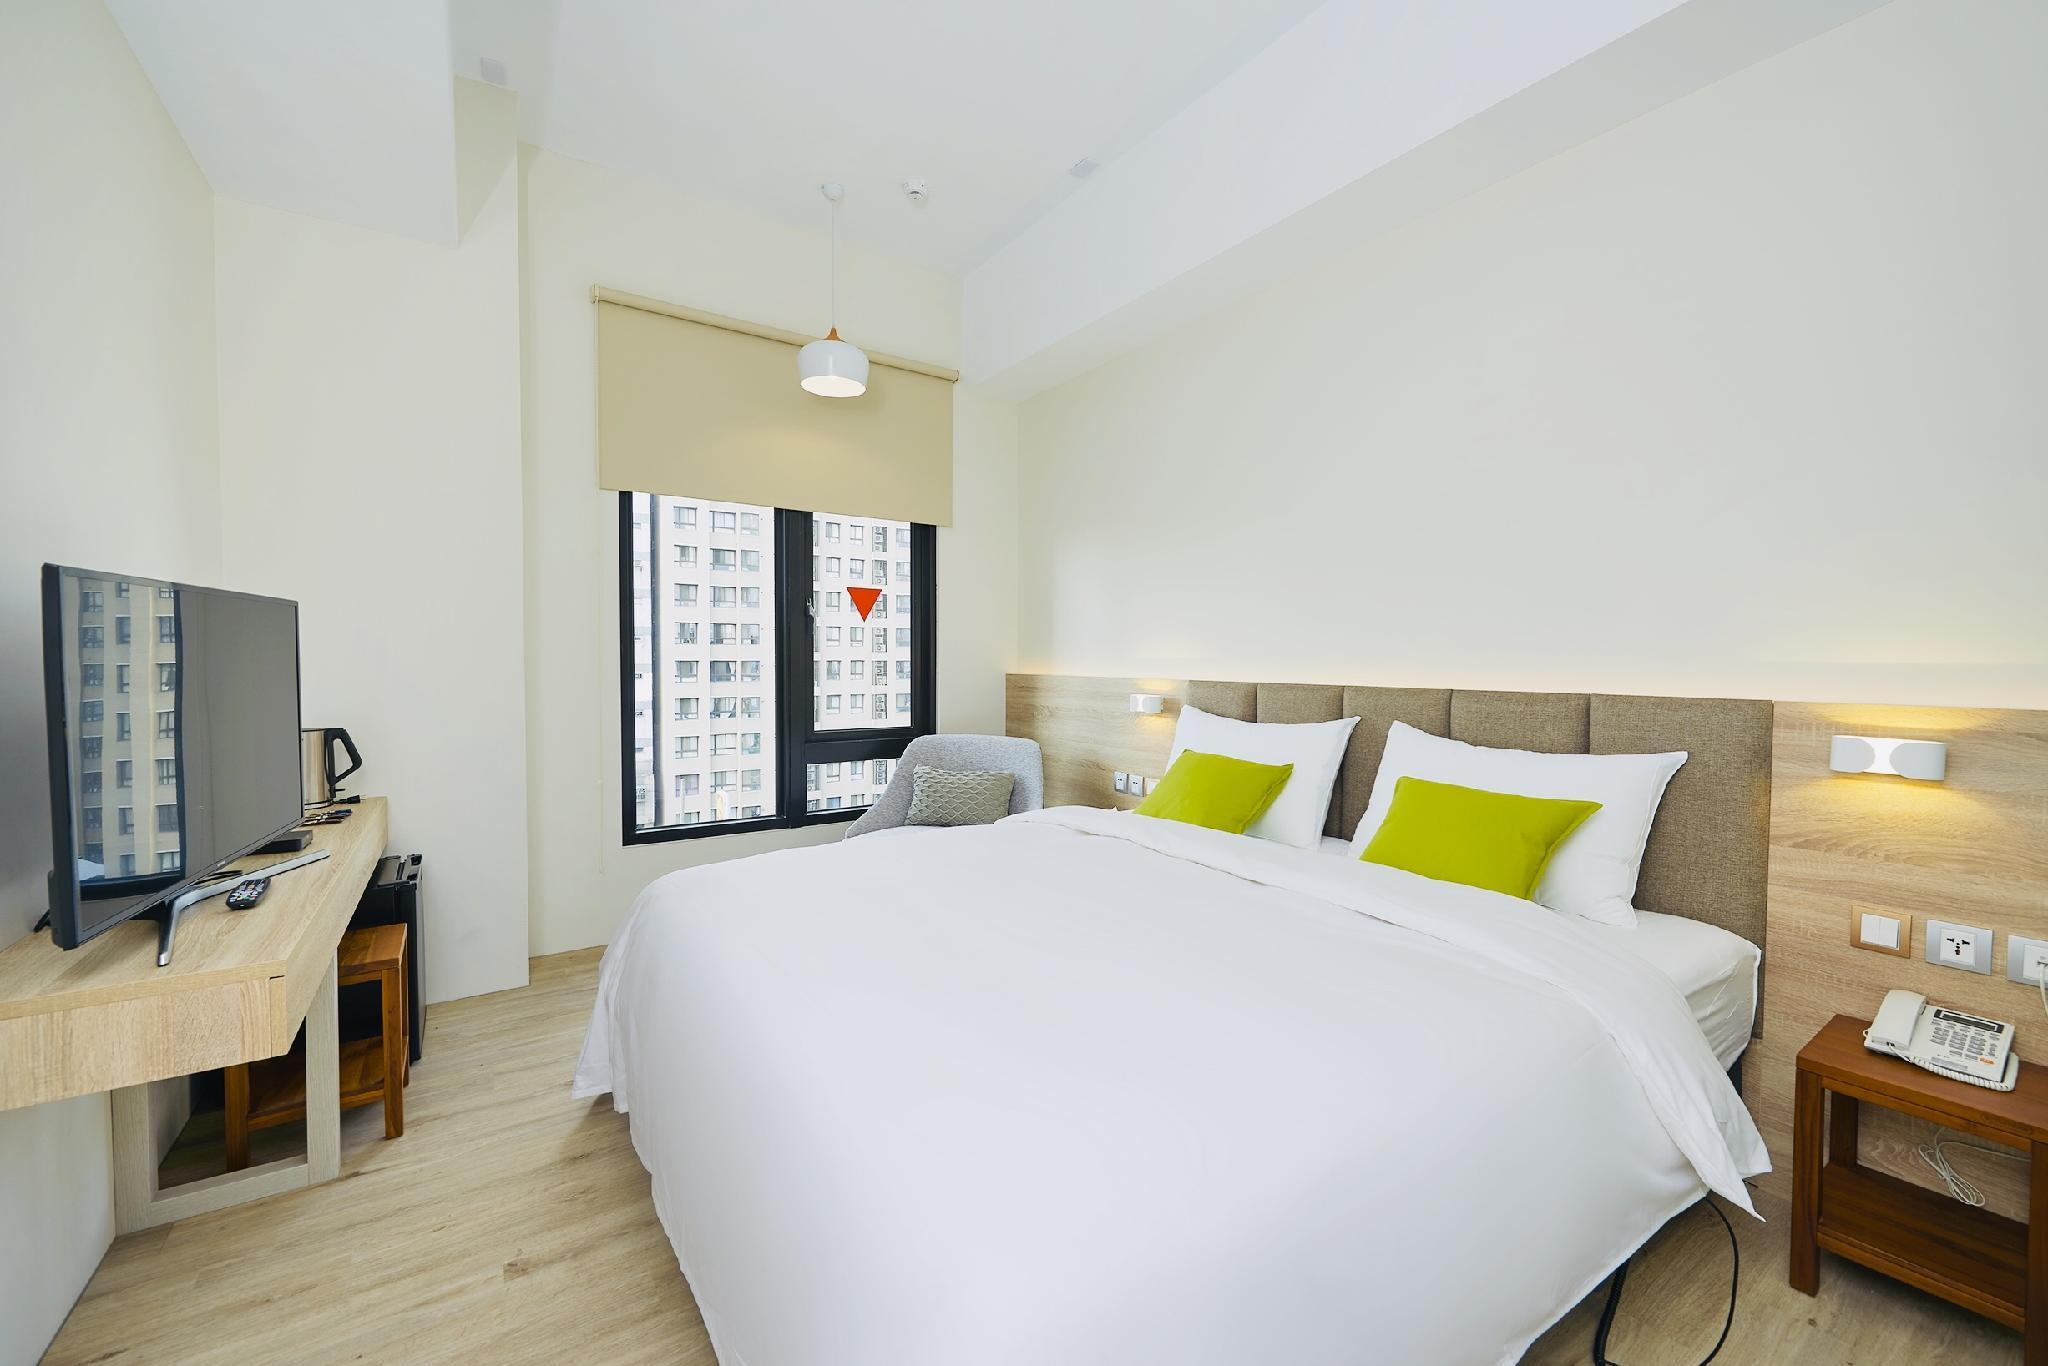 標準雙人房 大床(2張單人電動床合併)  (Hotel Z Standard Double Room with Combined 2 Electric Adjustable Single Beds)